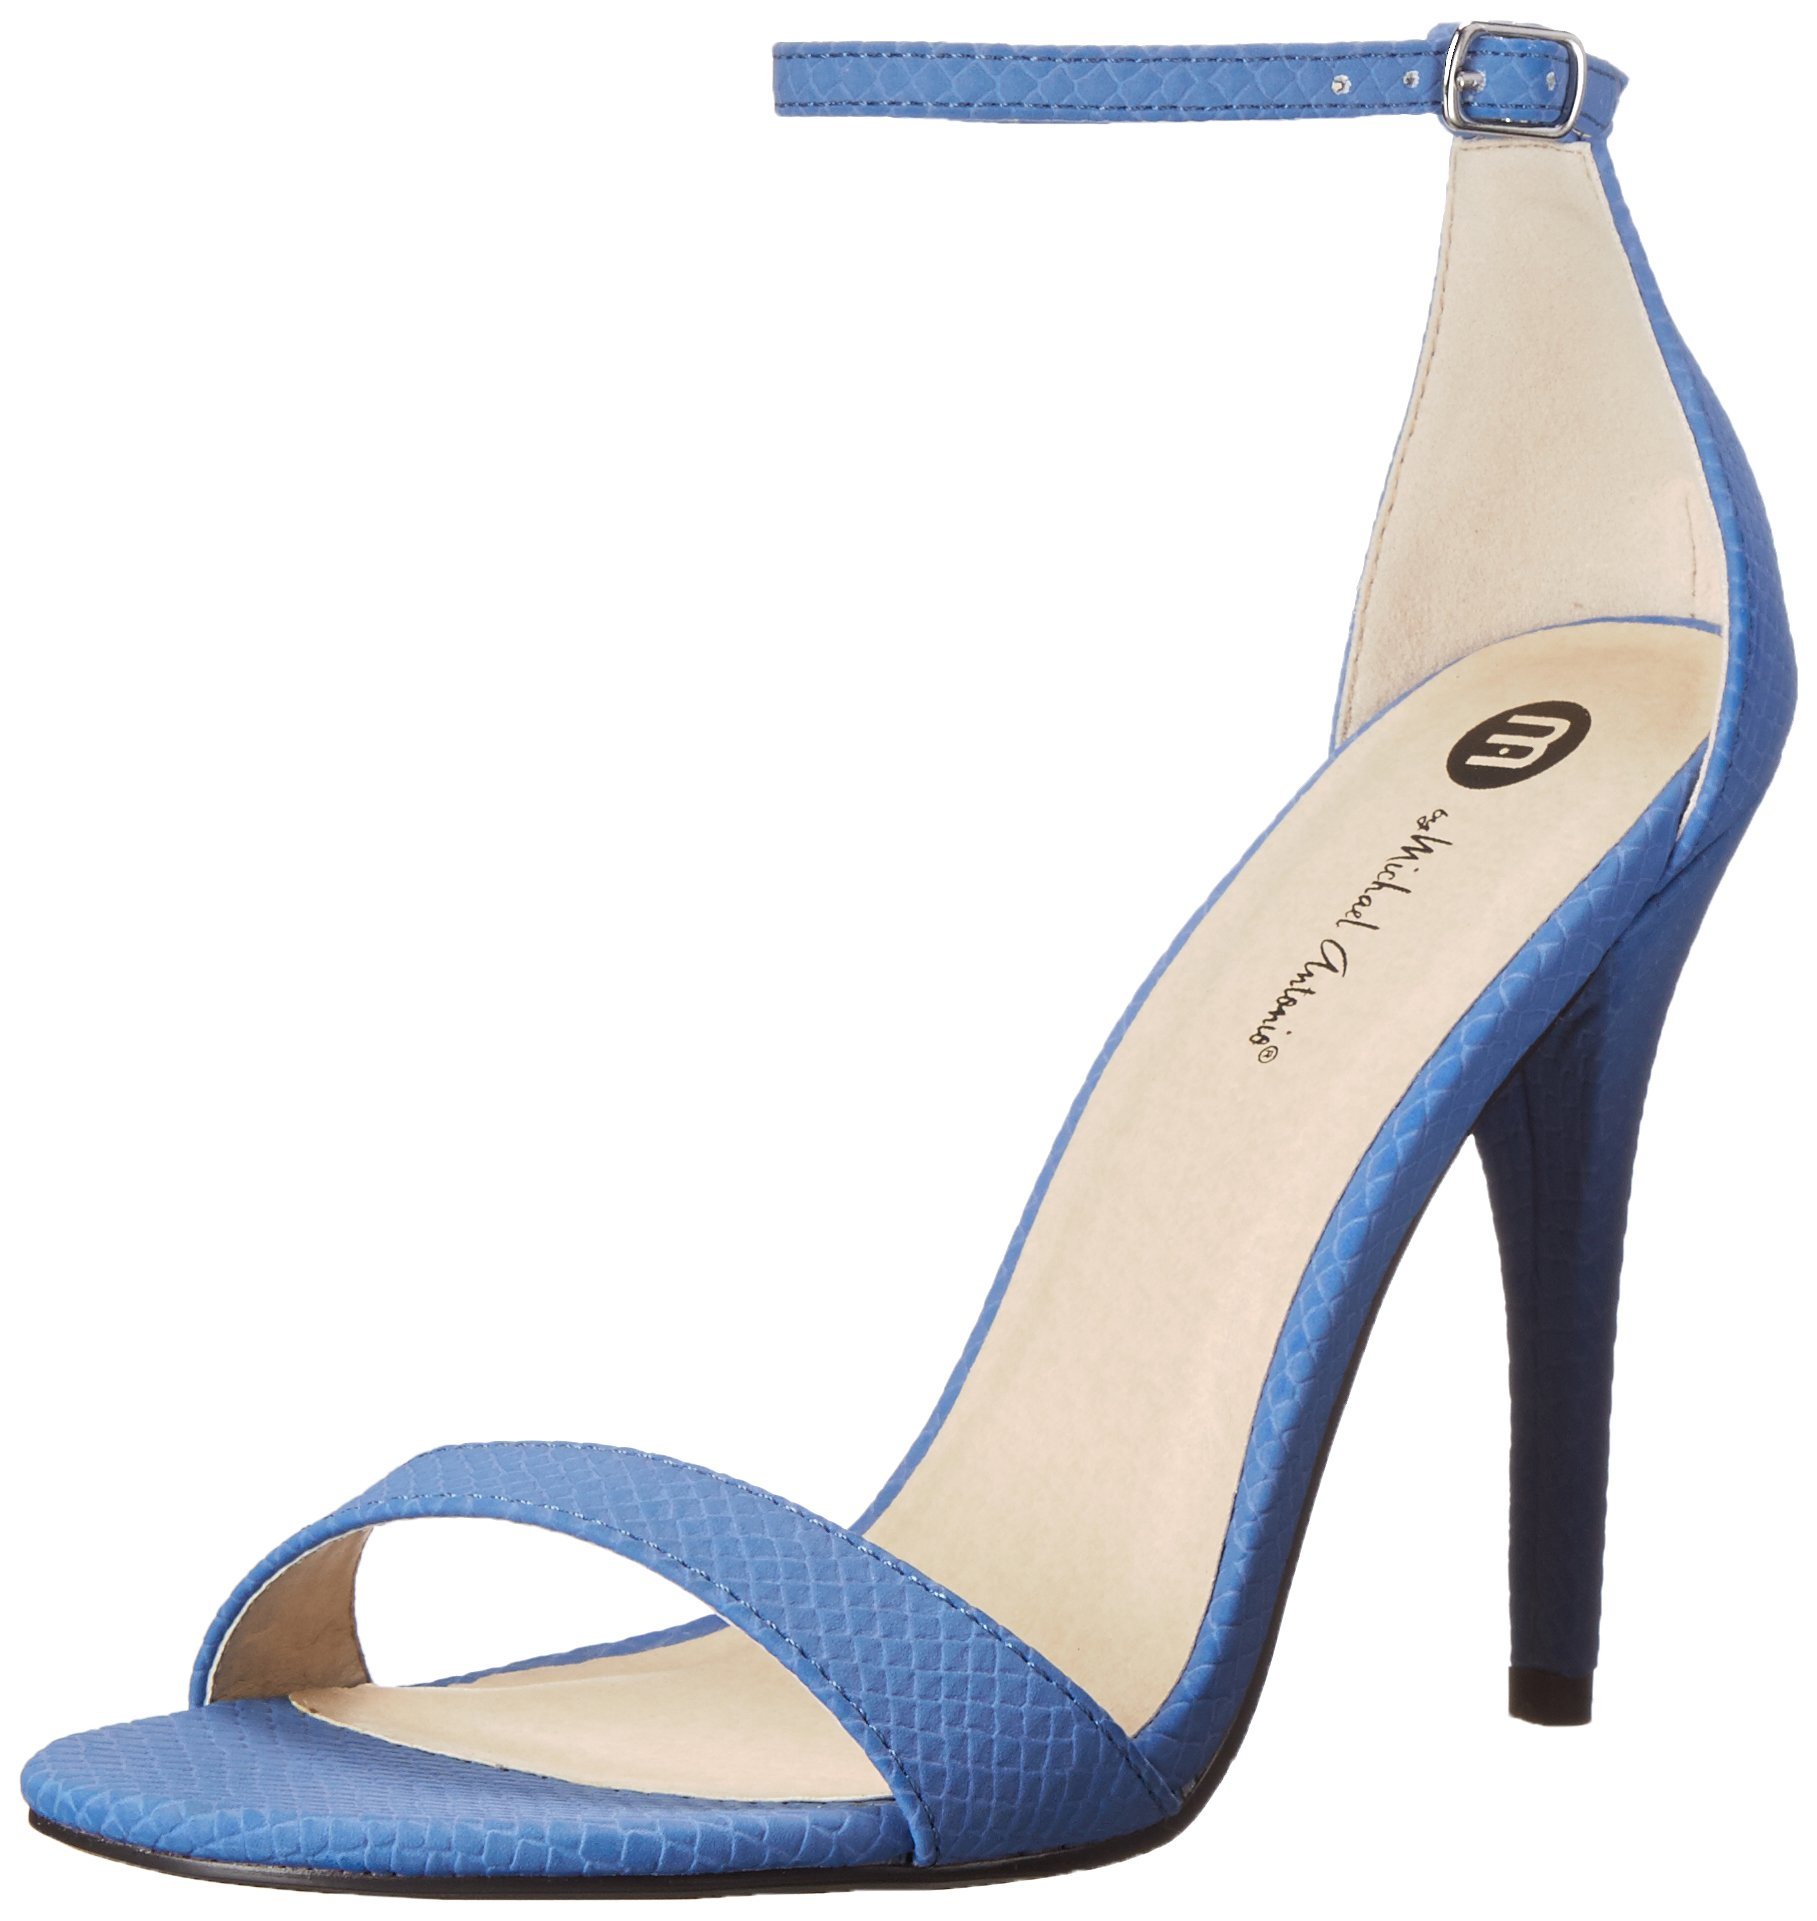 Giầy cao gót Michael Antonio Women's Jaxine REP1 Dress Sandal, màu Blue, Size: 6US - 36/37 EU